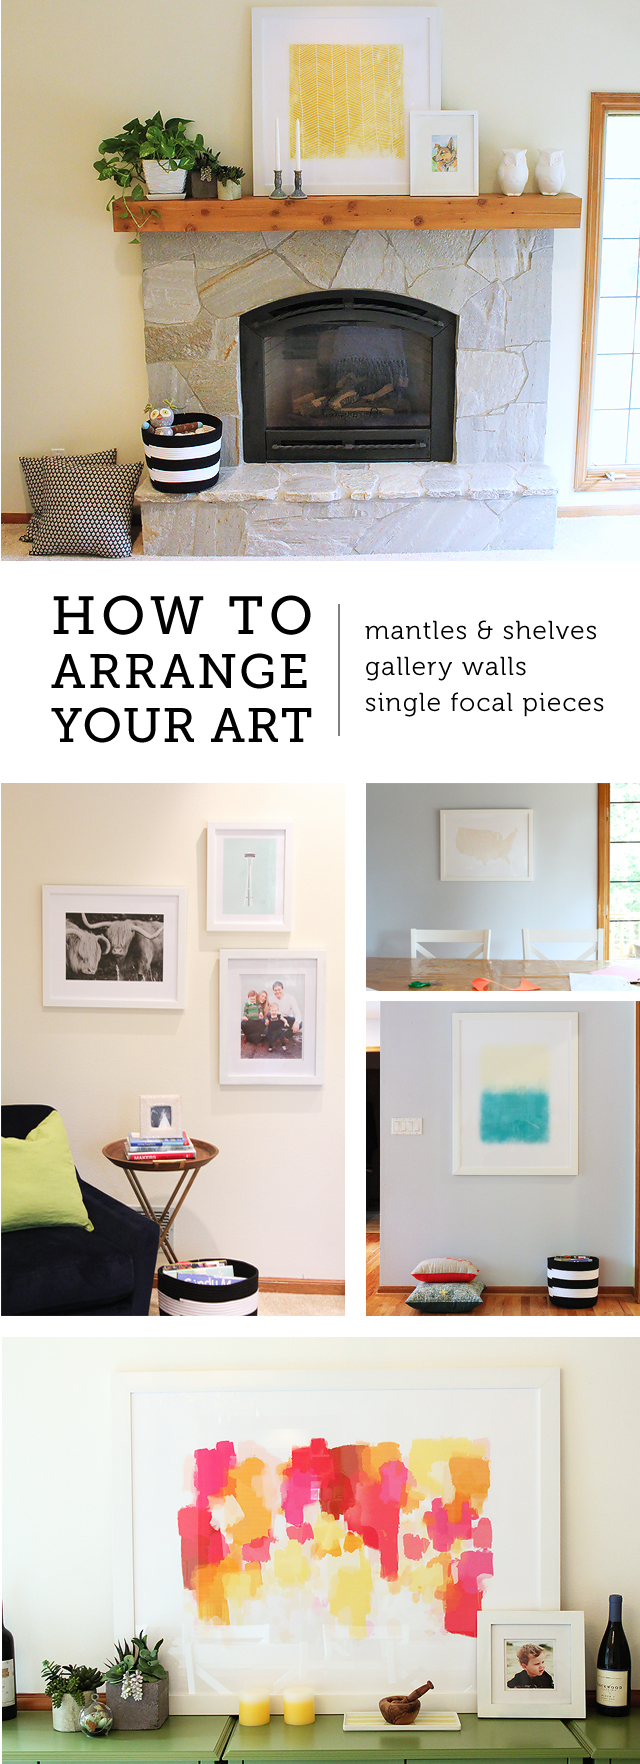 AWESOME tips from a professional designer on how to arrange art on your walls, mantles, and in gallery walls... Exactly what I needed to finally make the house look like I wanted it to!